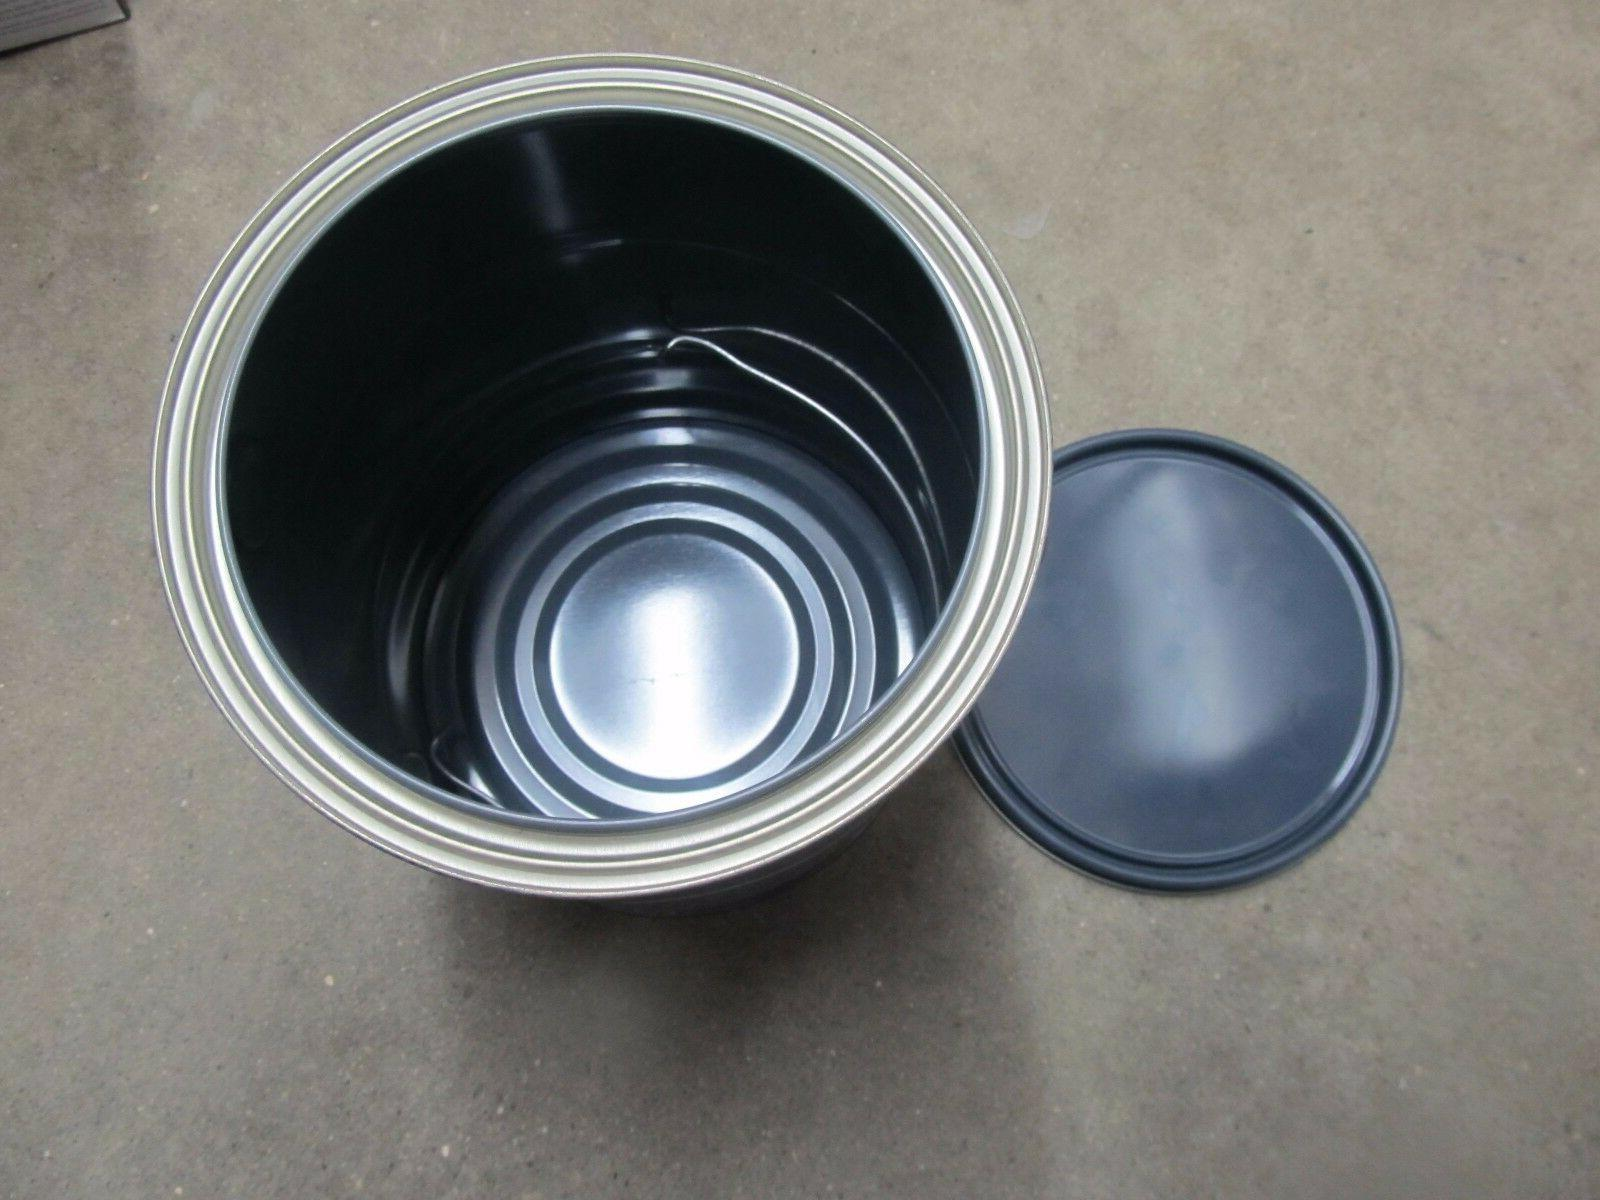 Collectibles Gas Oil Advertising Cans Buckets Valspar 1 Gallon Residential Paint Bucket Silver Metal Can Stains Crafts Storage